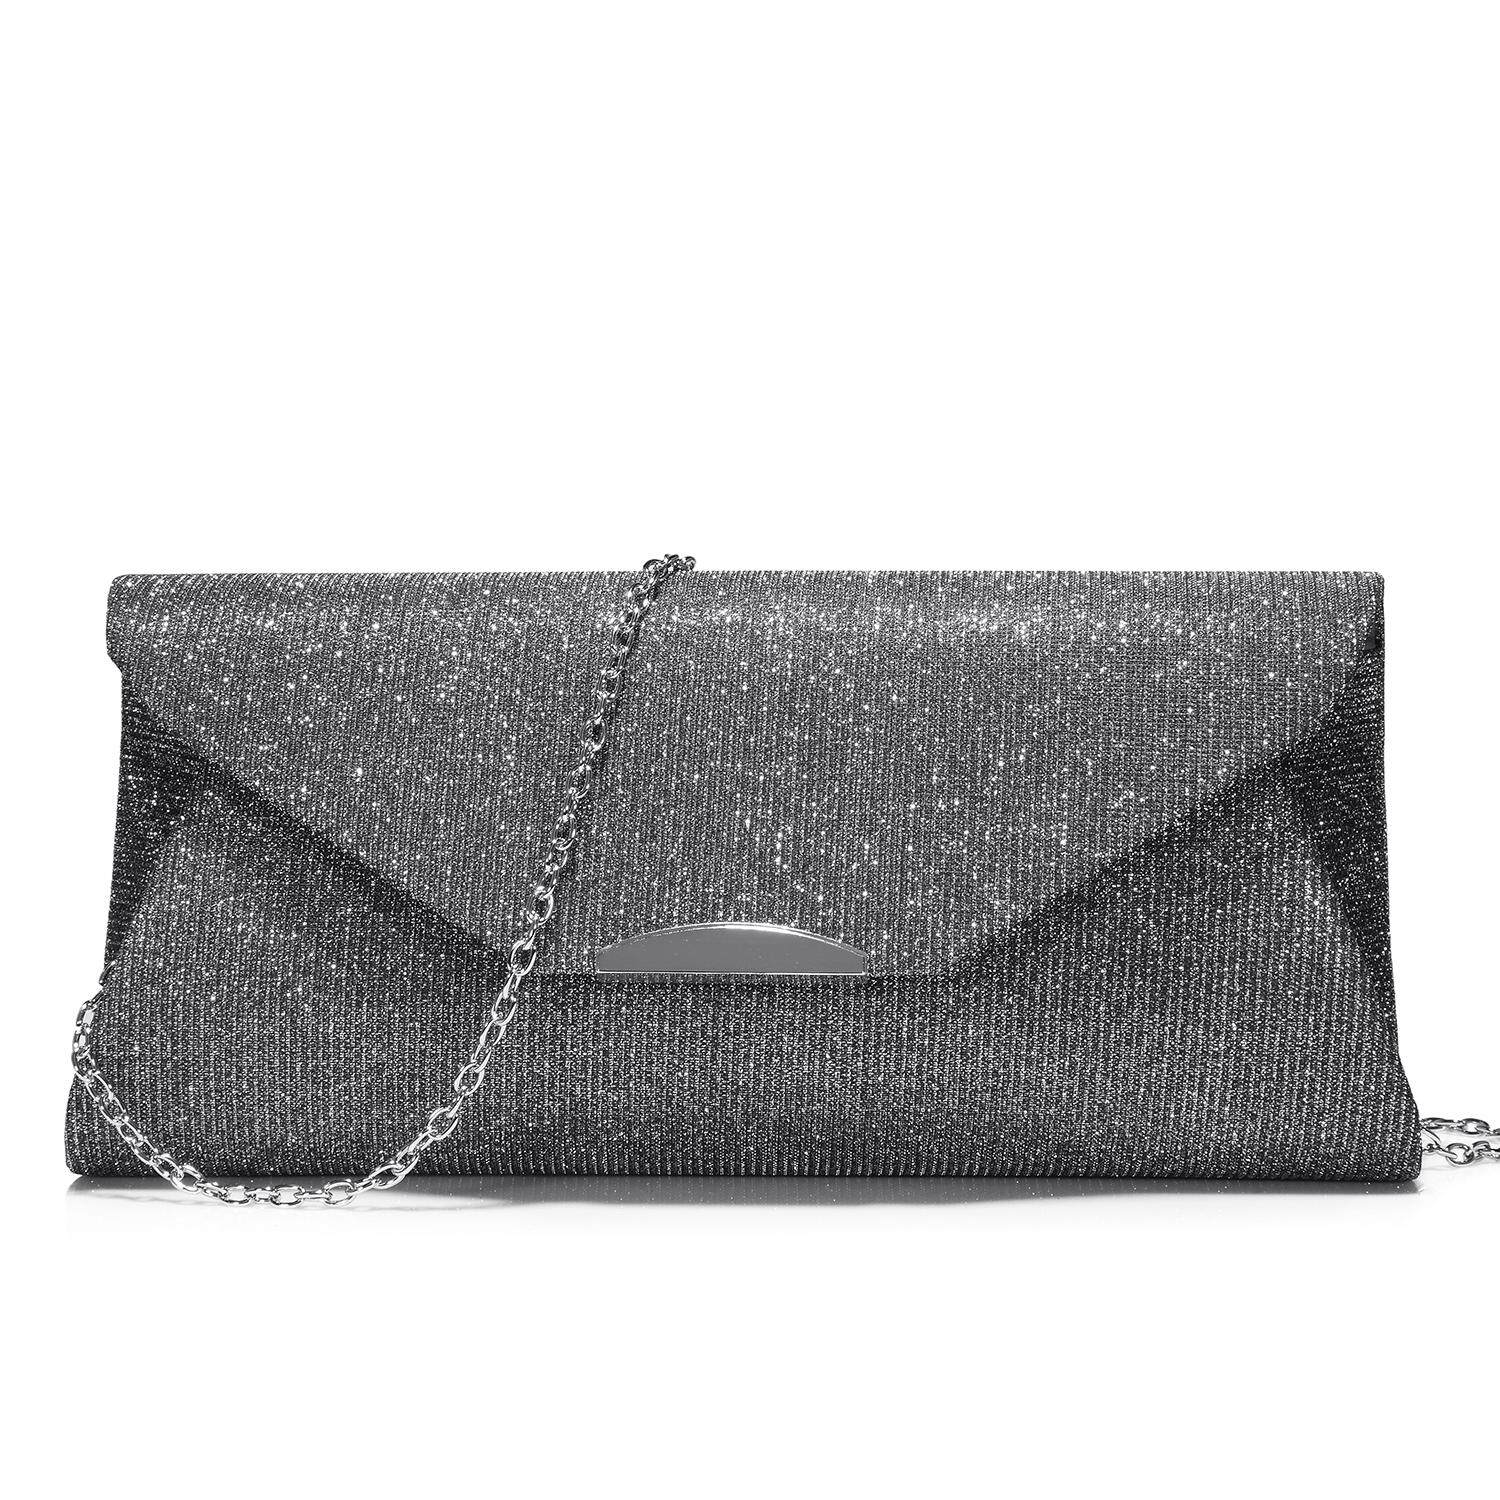 LOVEVOOK day clutch for women small women bags mini female crossbody bag  flash cloth chain strap cc9b54cac506c